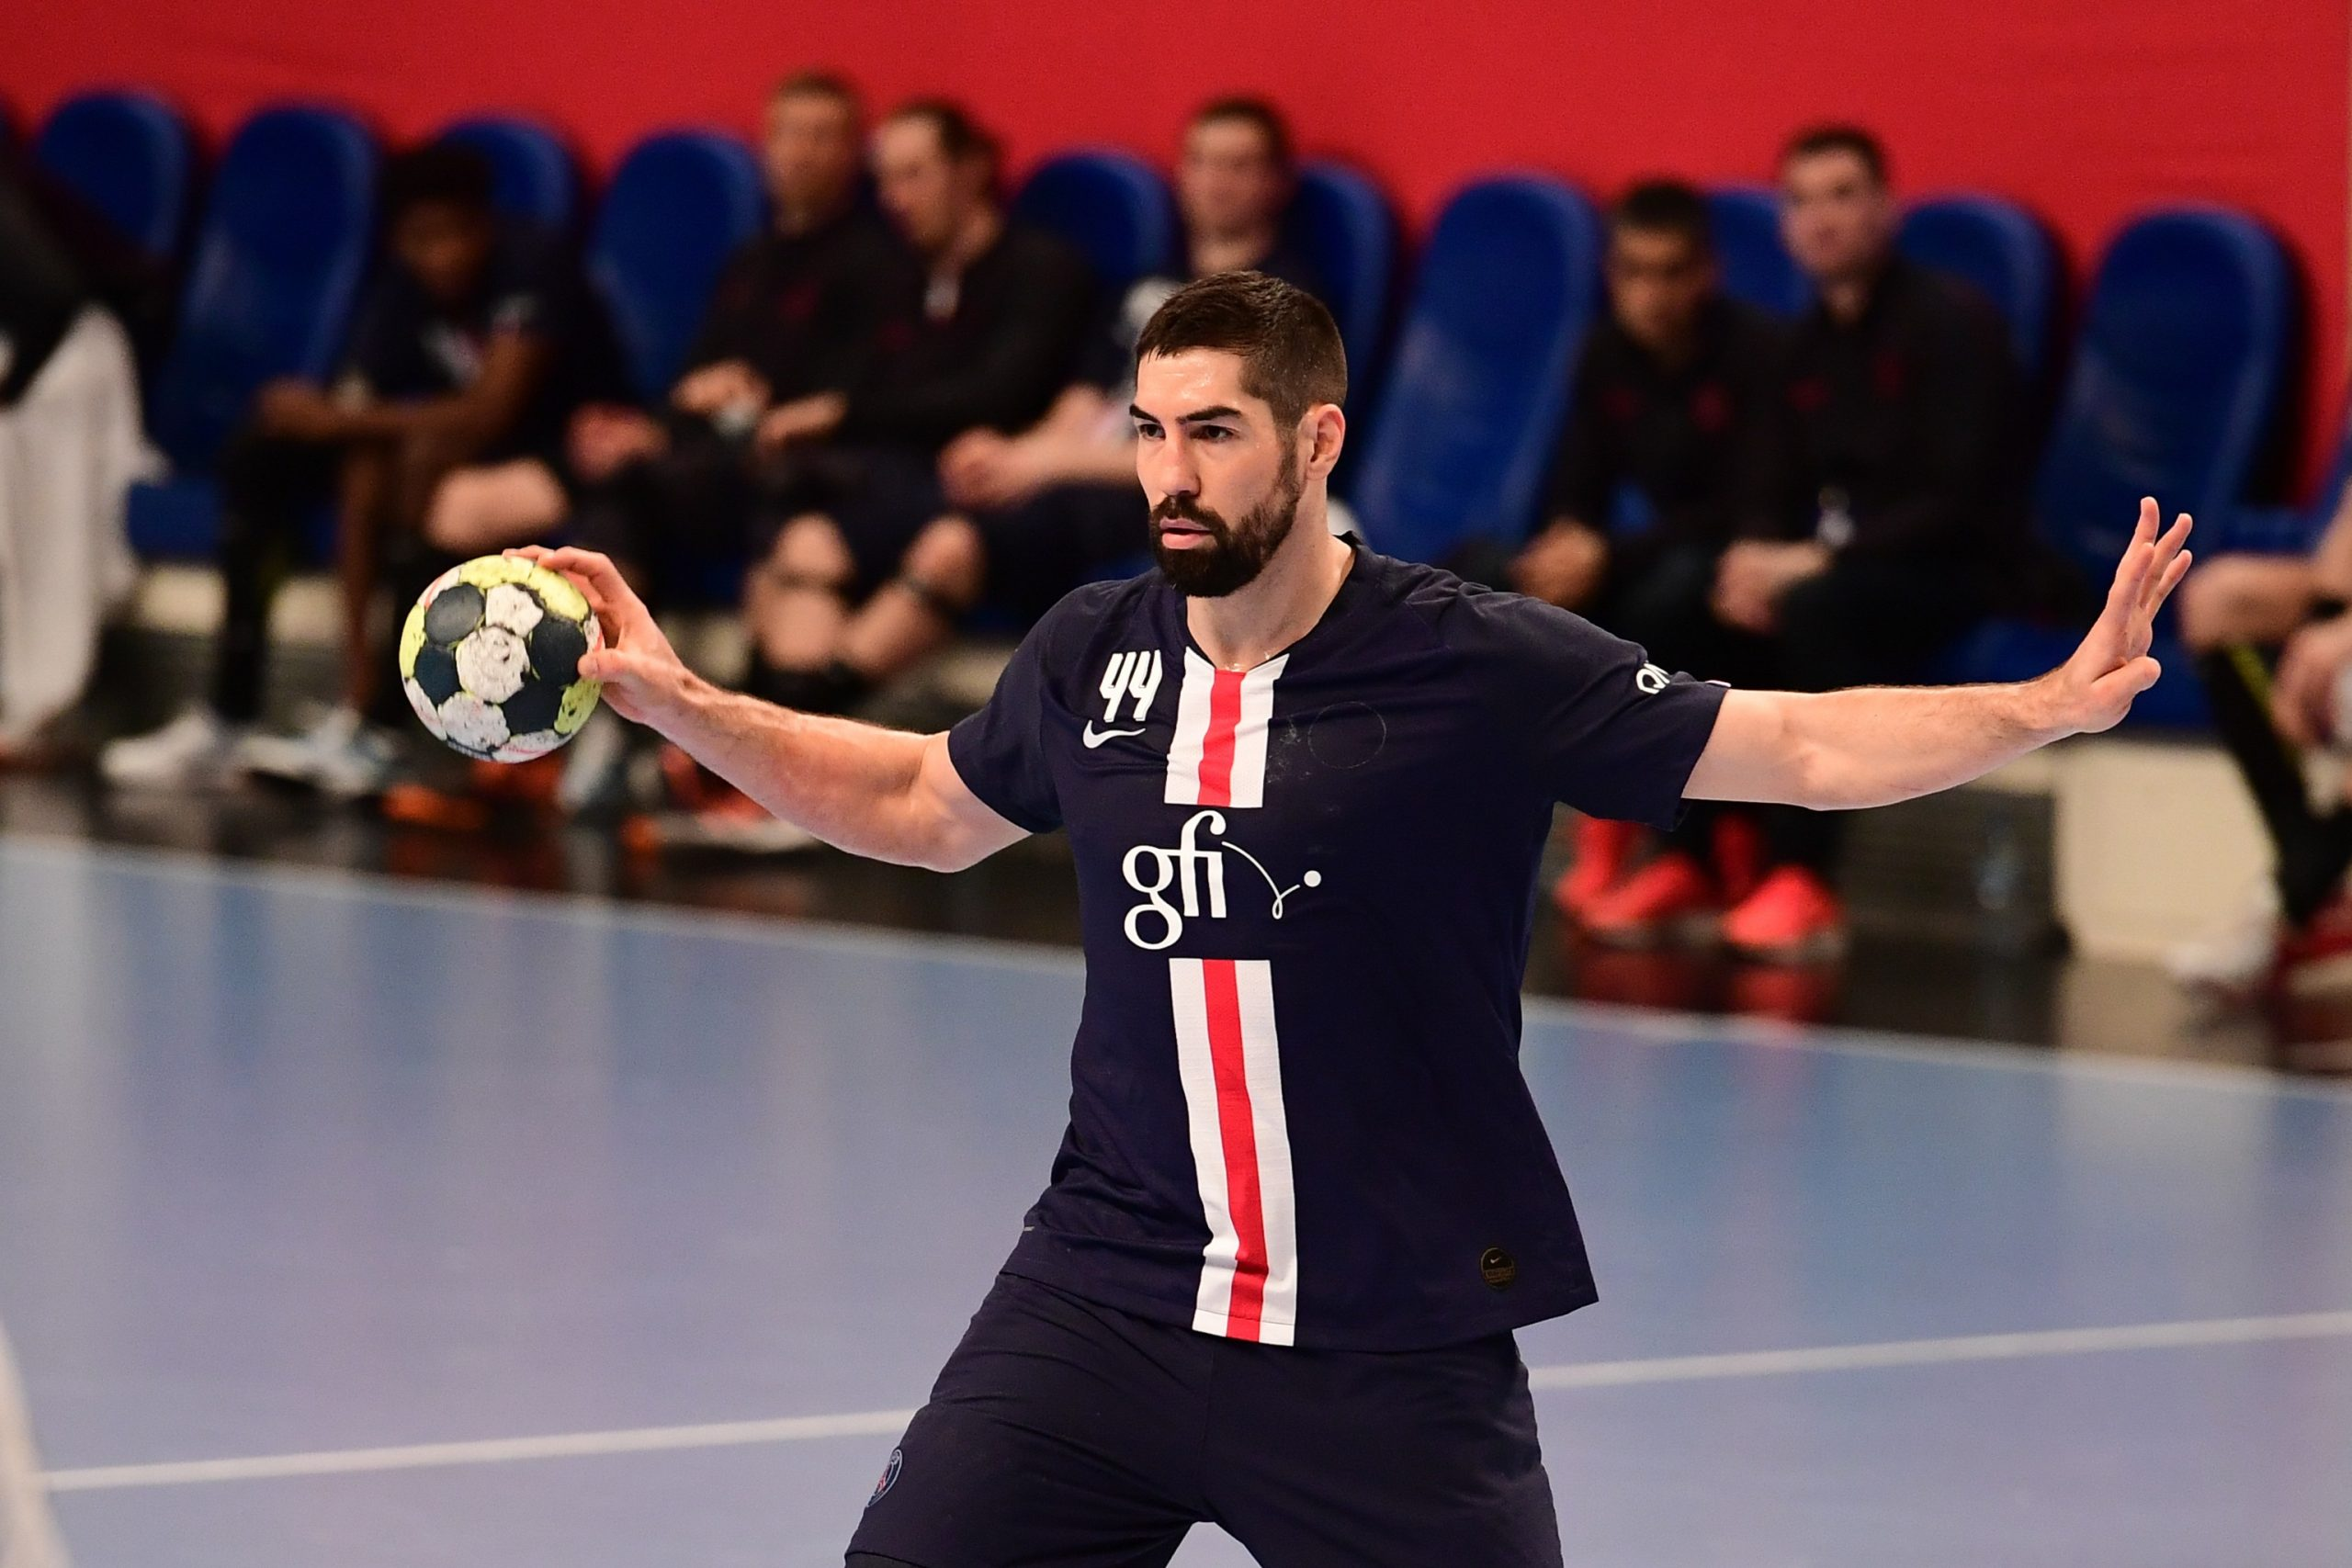 Officiel - La Ligue des Champions de handball se terminera avec un Final Four en décembre